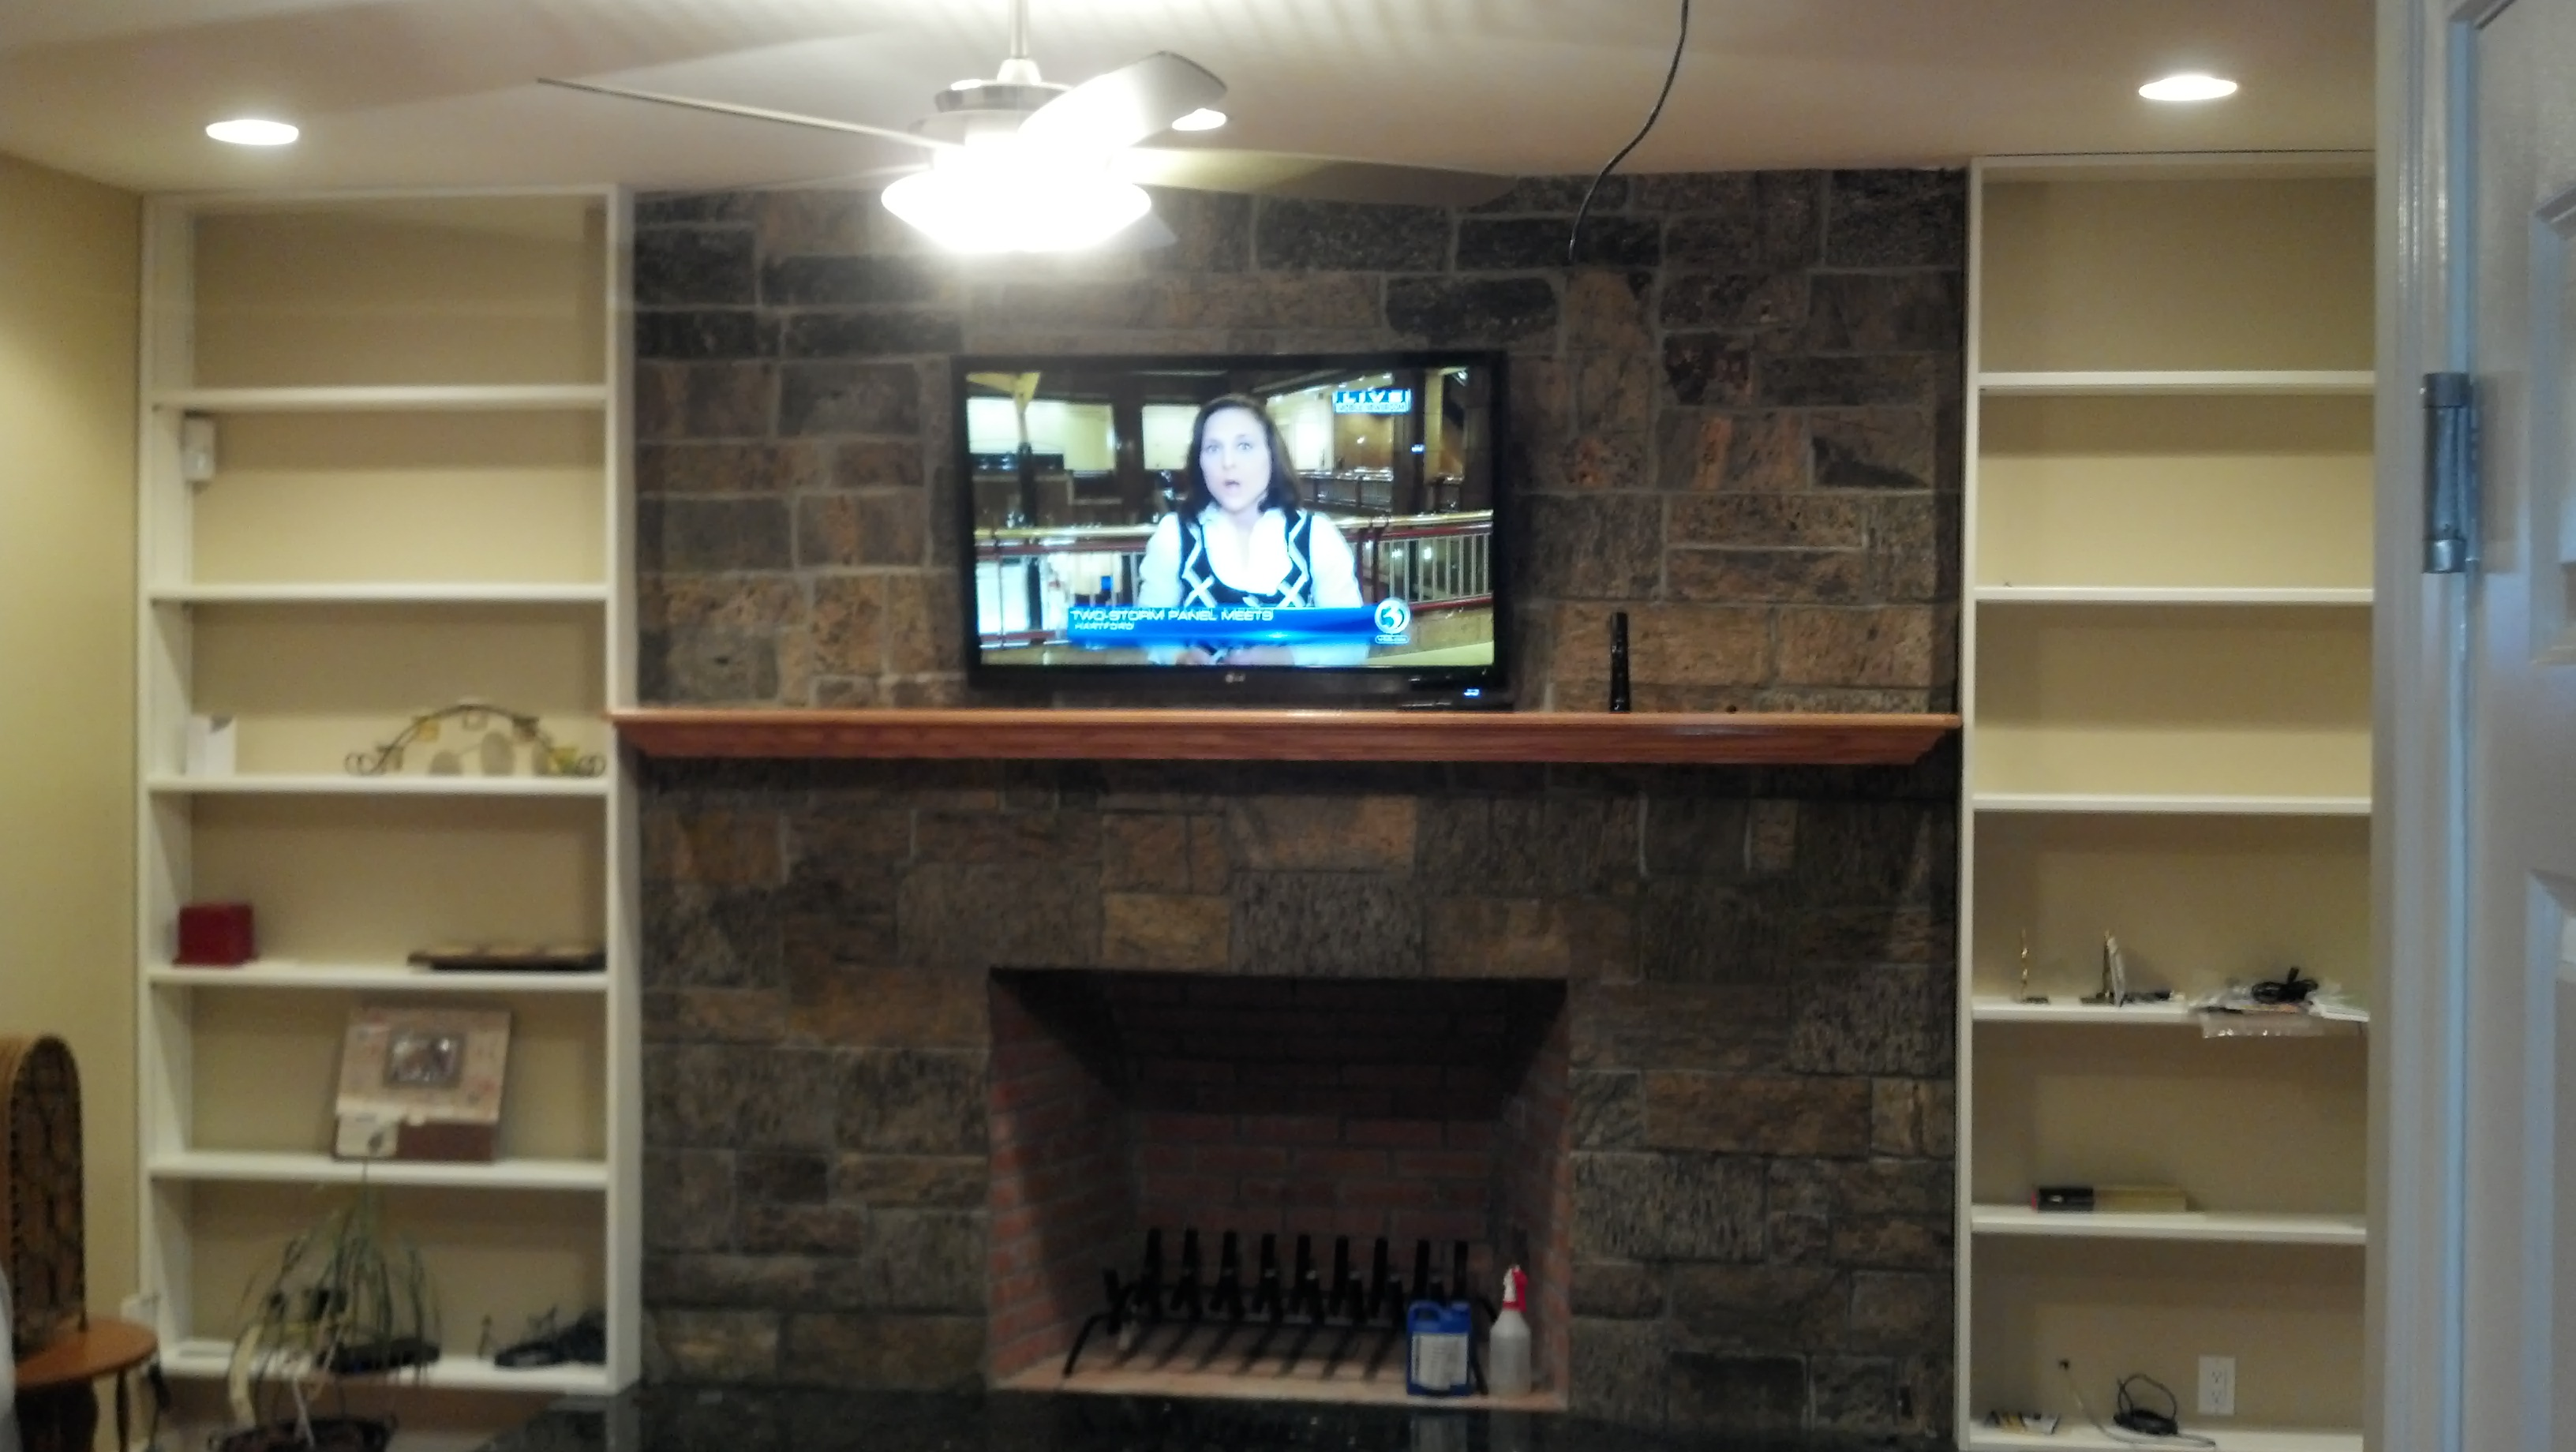 Branford Ct Tv Mounted Over Brick Fireplace W New Construction Home Home Theater Installation